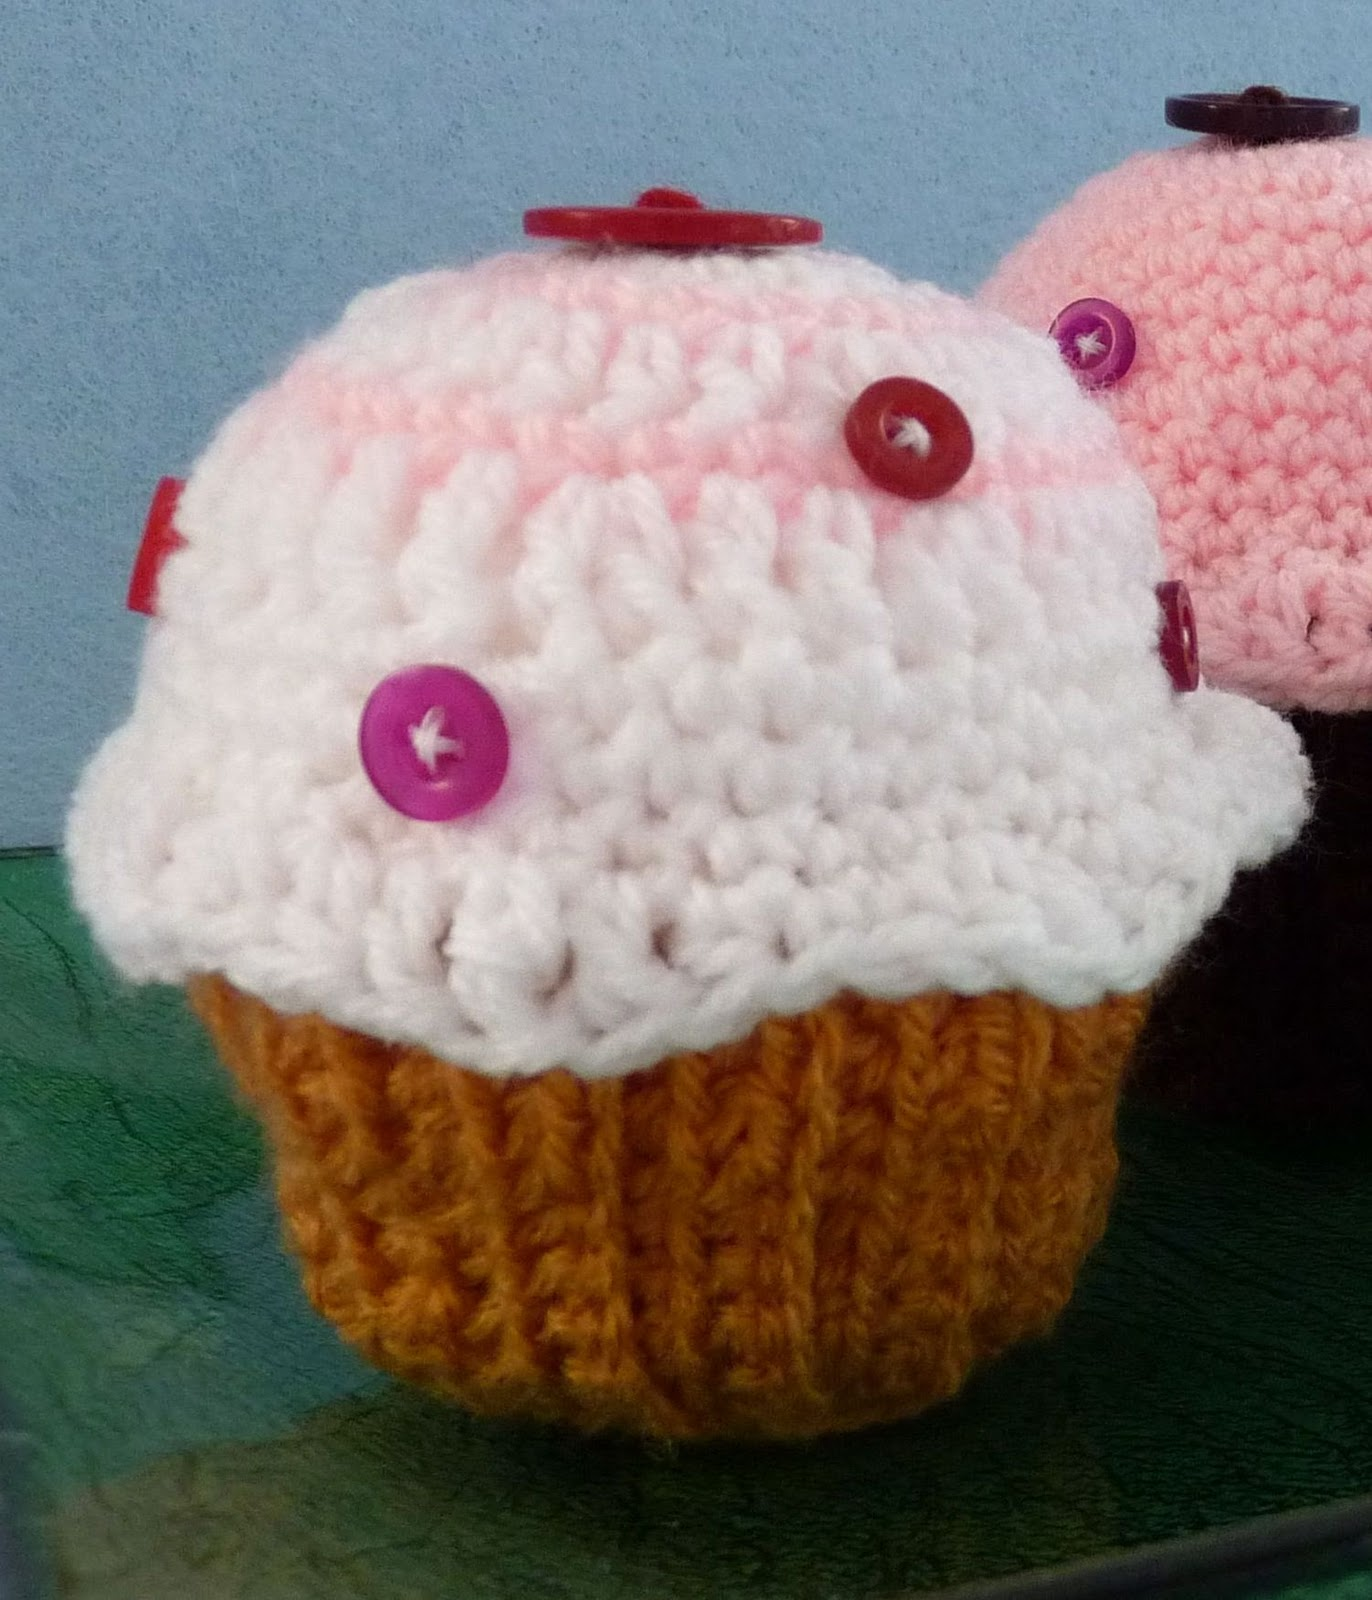 Crochet Pattern Free Cupcake : The Adventures of the Gingerbread Lady: TUTORIAL ...